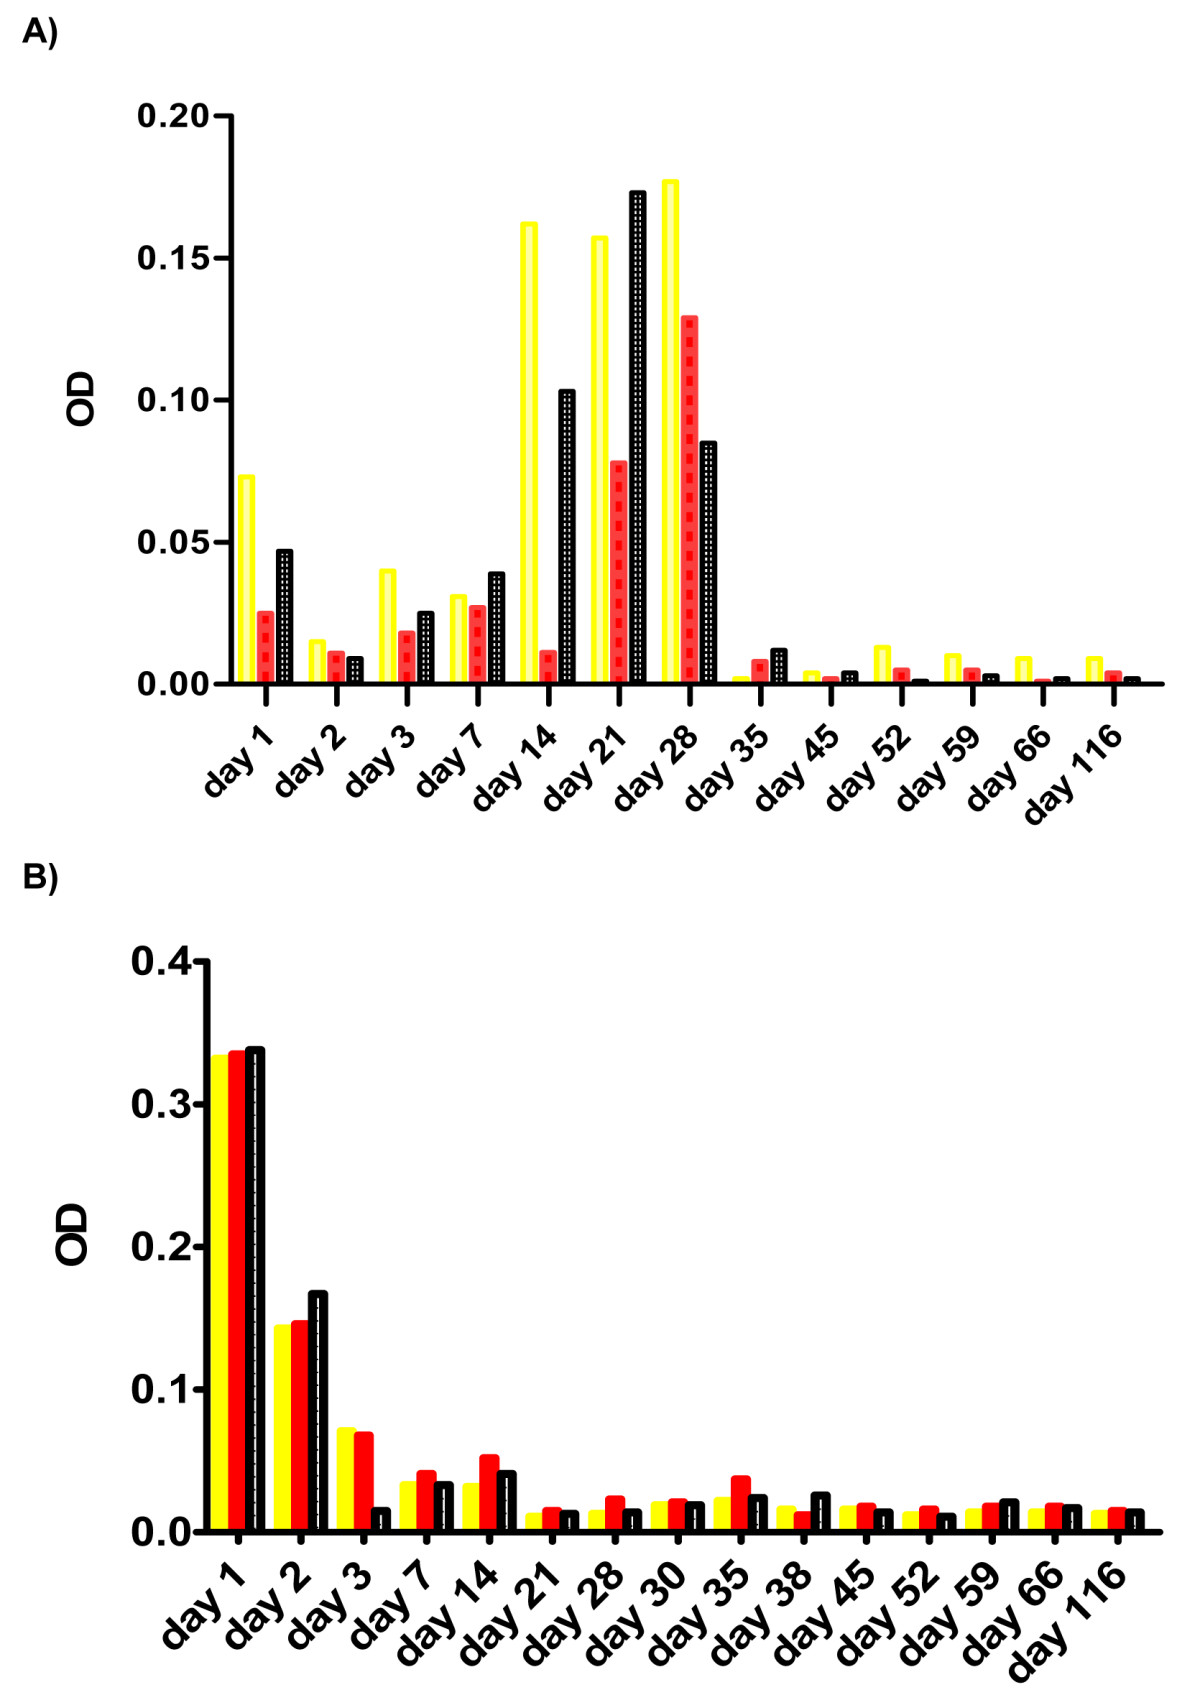 http://static-content.springer.com/image/art%3A10.1186%2F1476-5926-10-4/MediaObjects/12946_2010_Article_136_Fig4_HTML.jpg